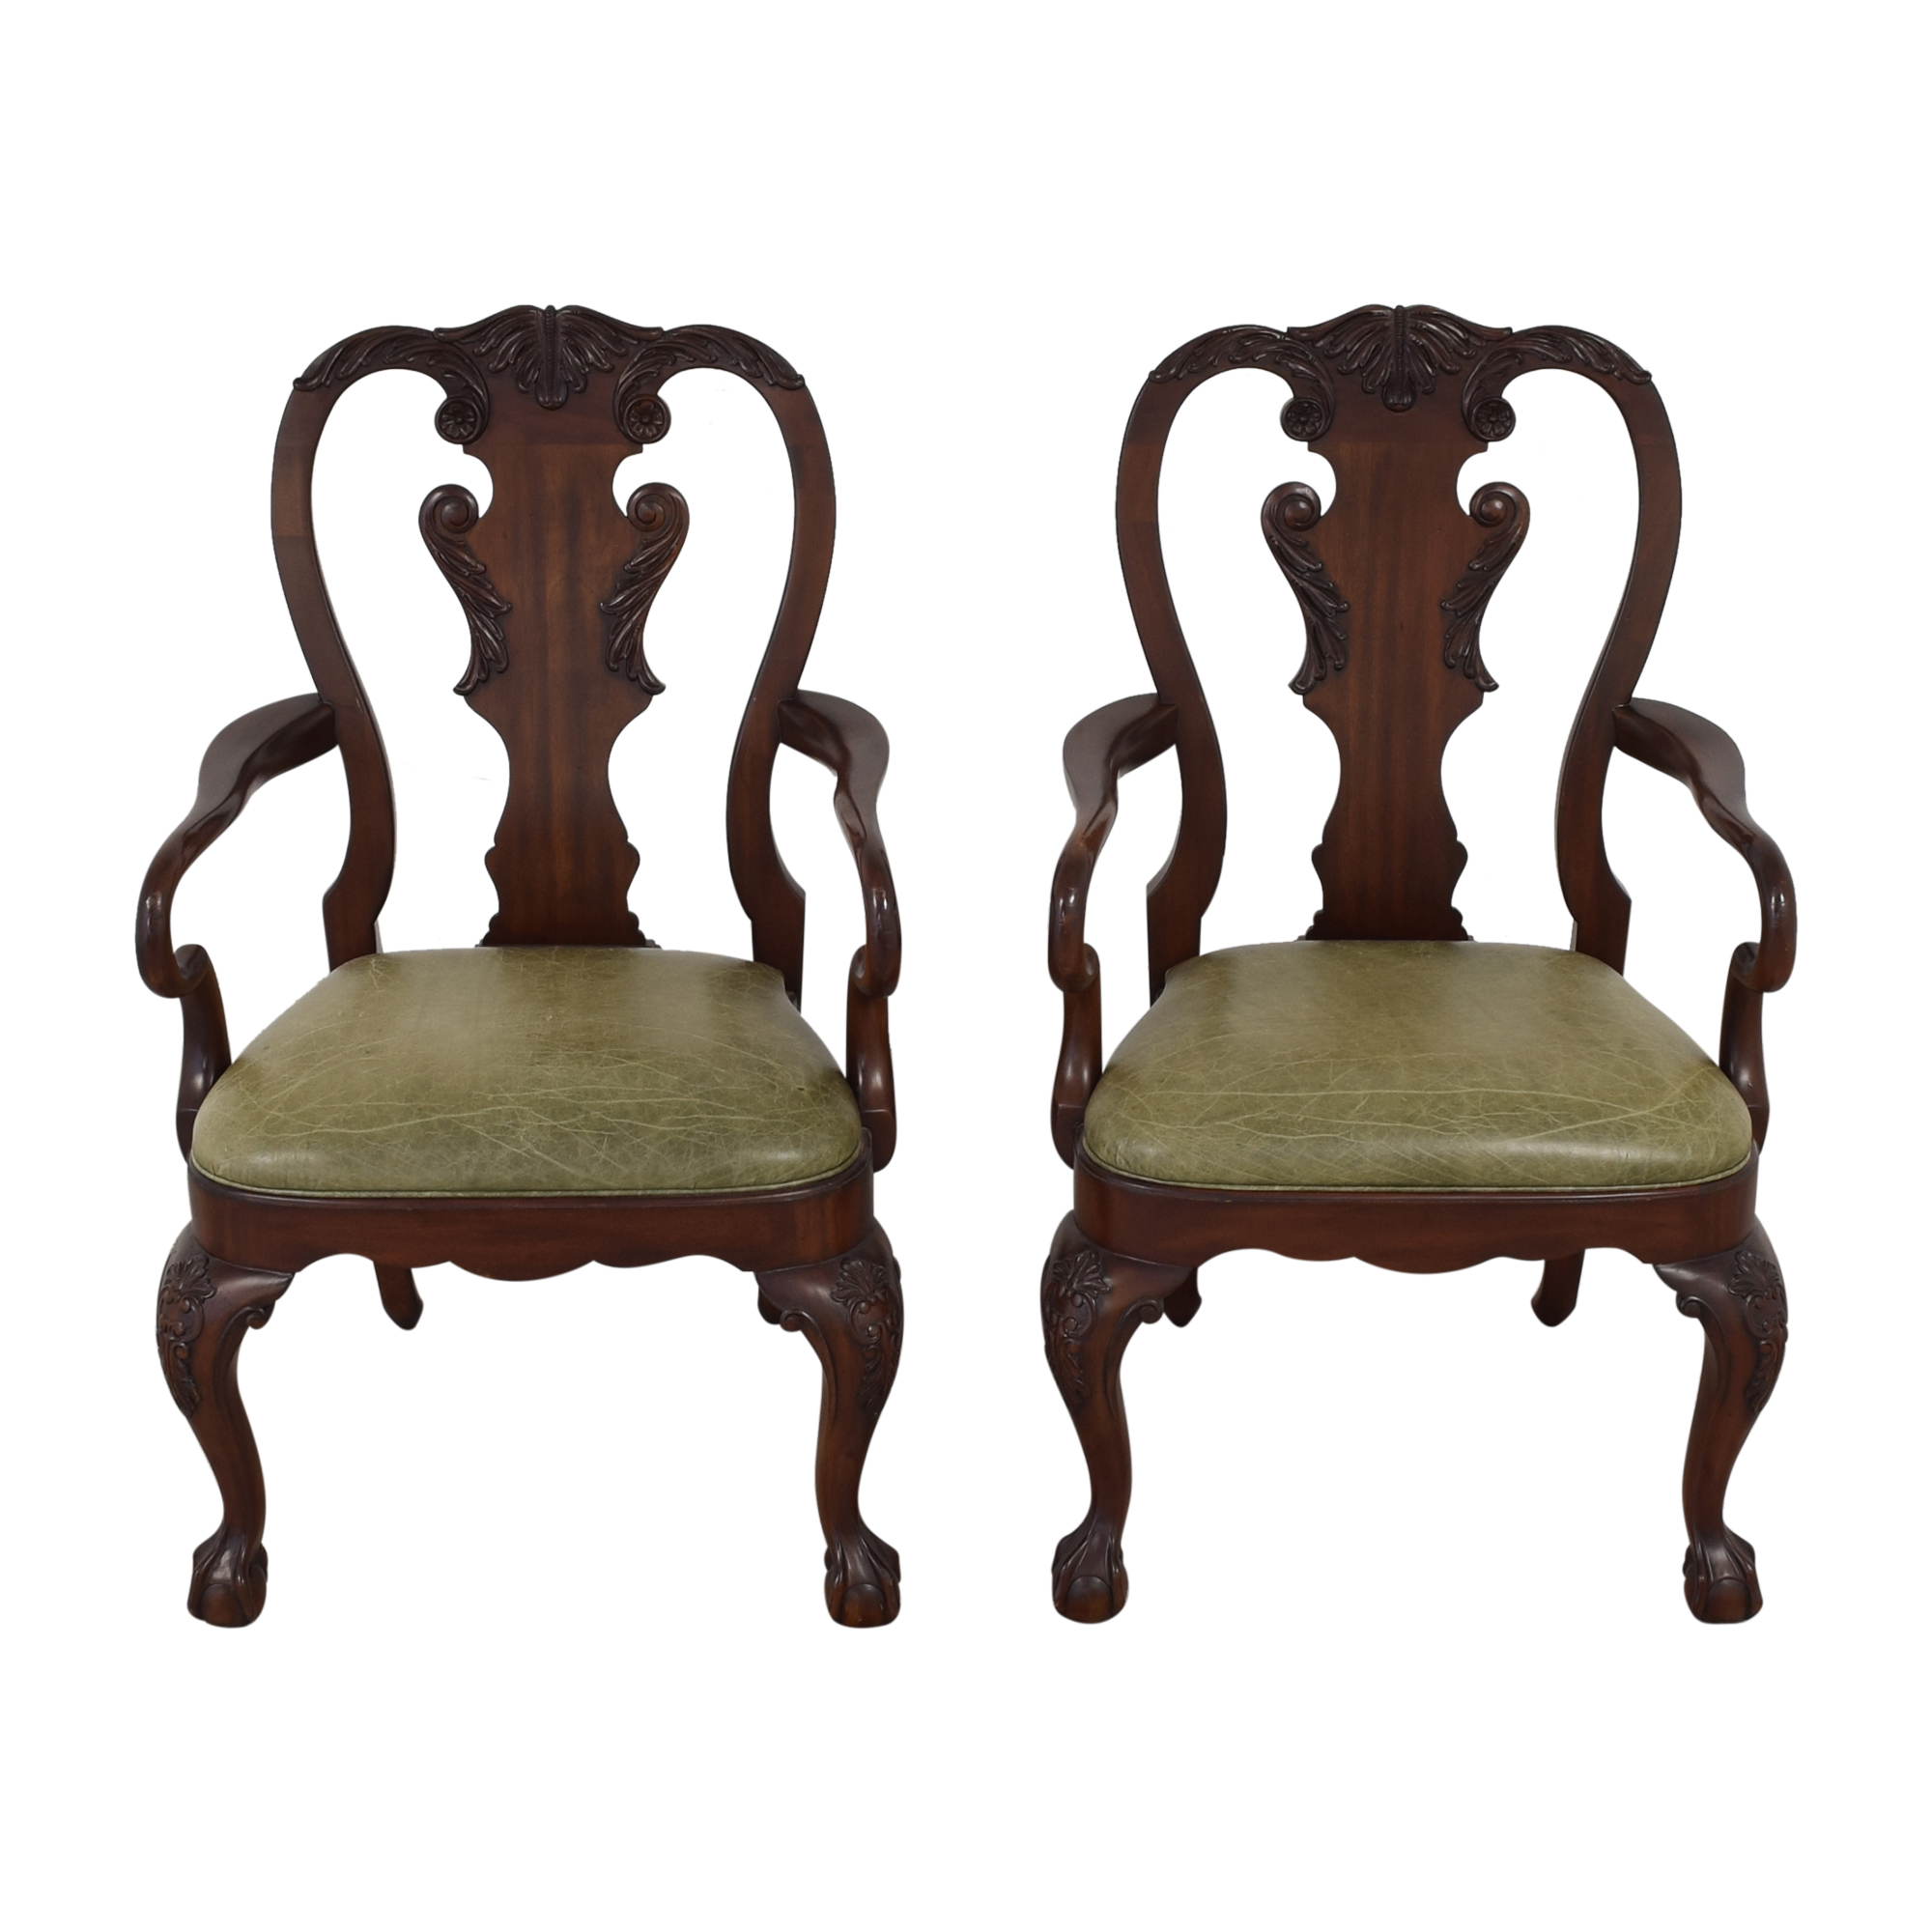 buy Ethan Allen Queen Anne Dining Arm Chairs Ethan Allen Chairs